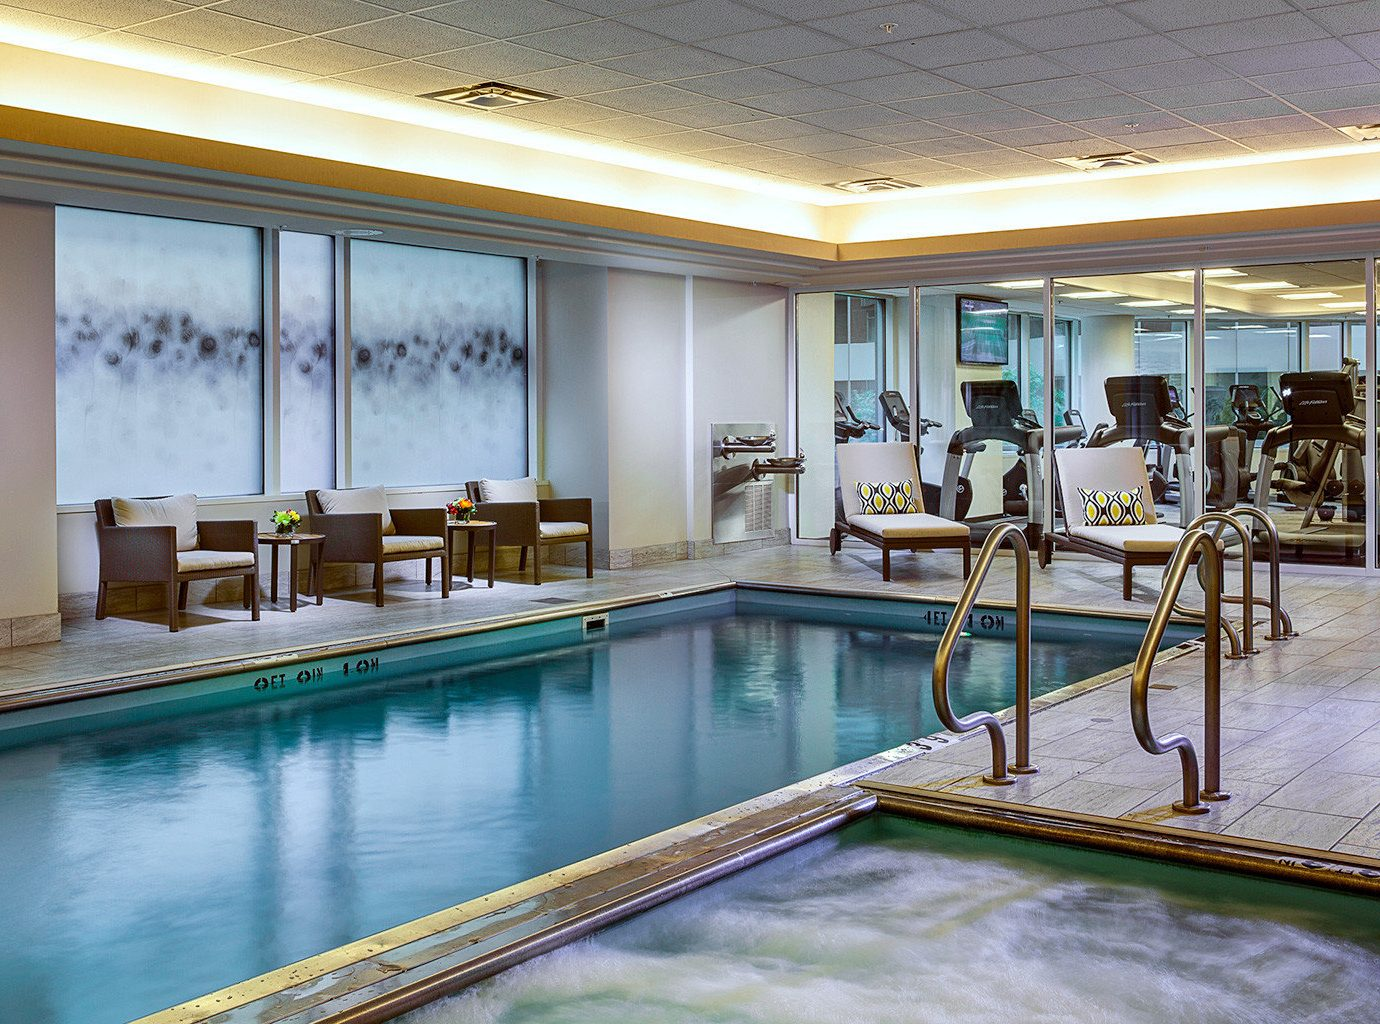 Business City Classic Family Fitness Pool Wellness swimming pool building property leisure Resort condominium counter mansion Villa Lobby palace porch